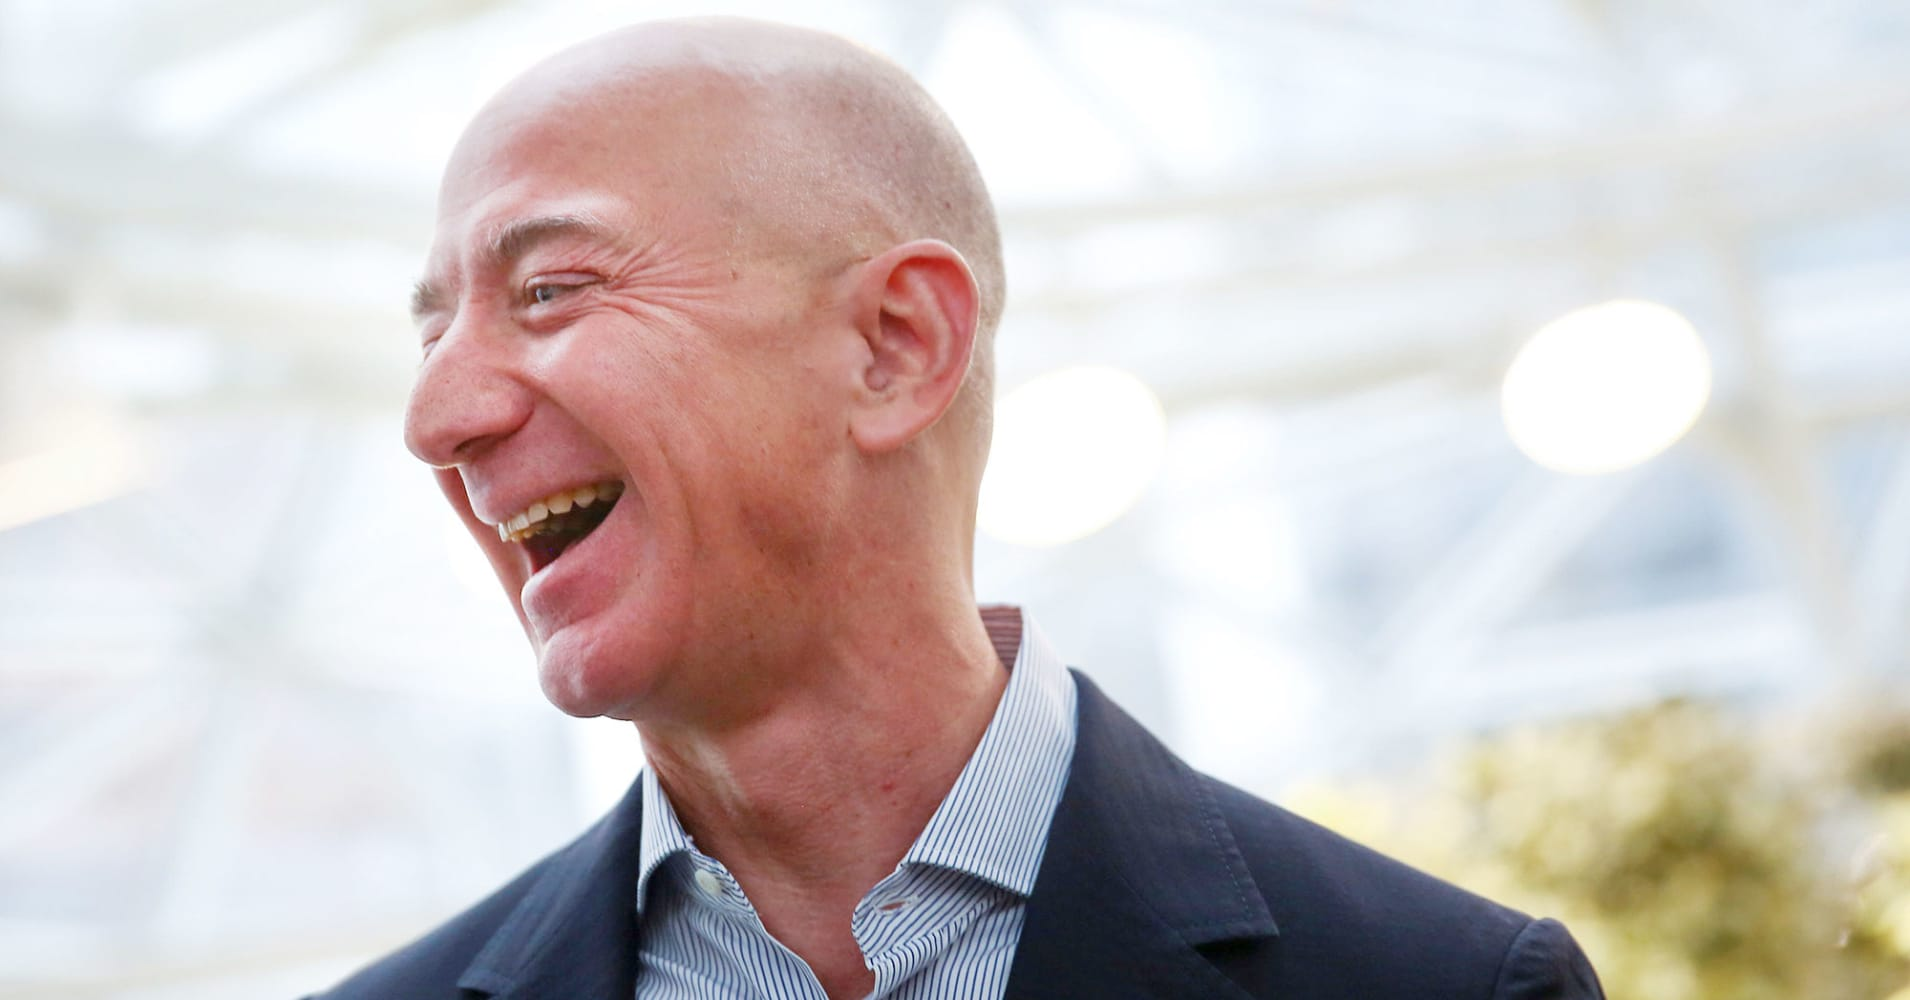 Amazon Just Hit a New High, and One Trader Sees More to Come